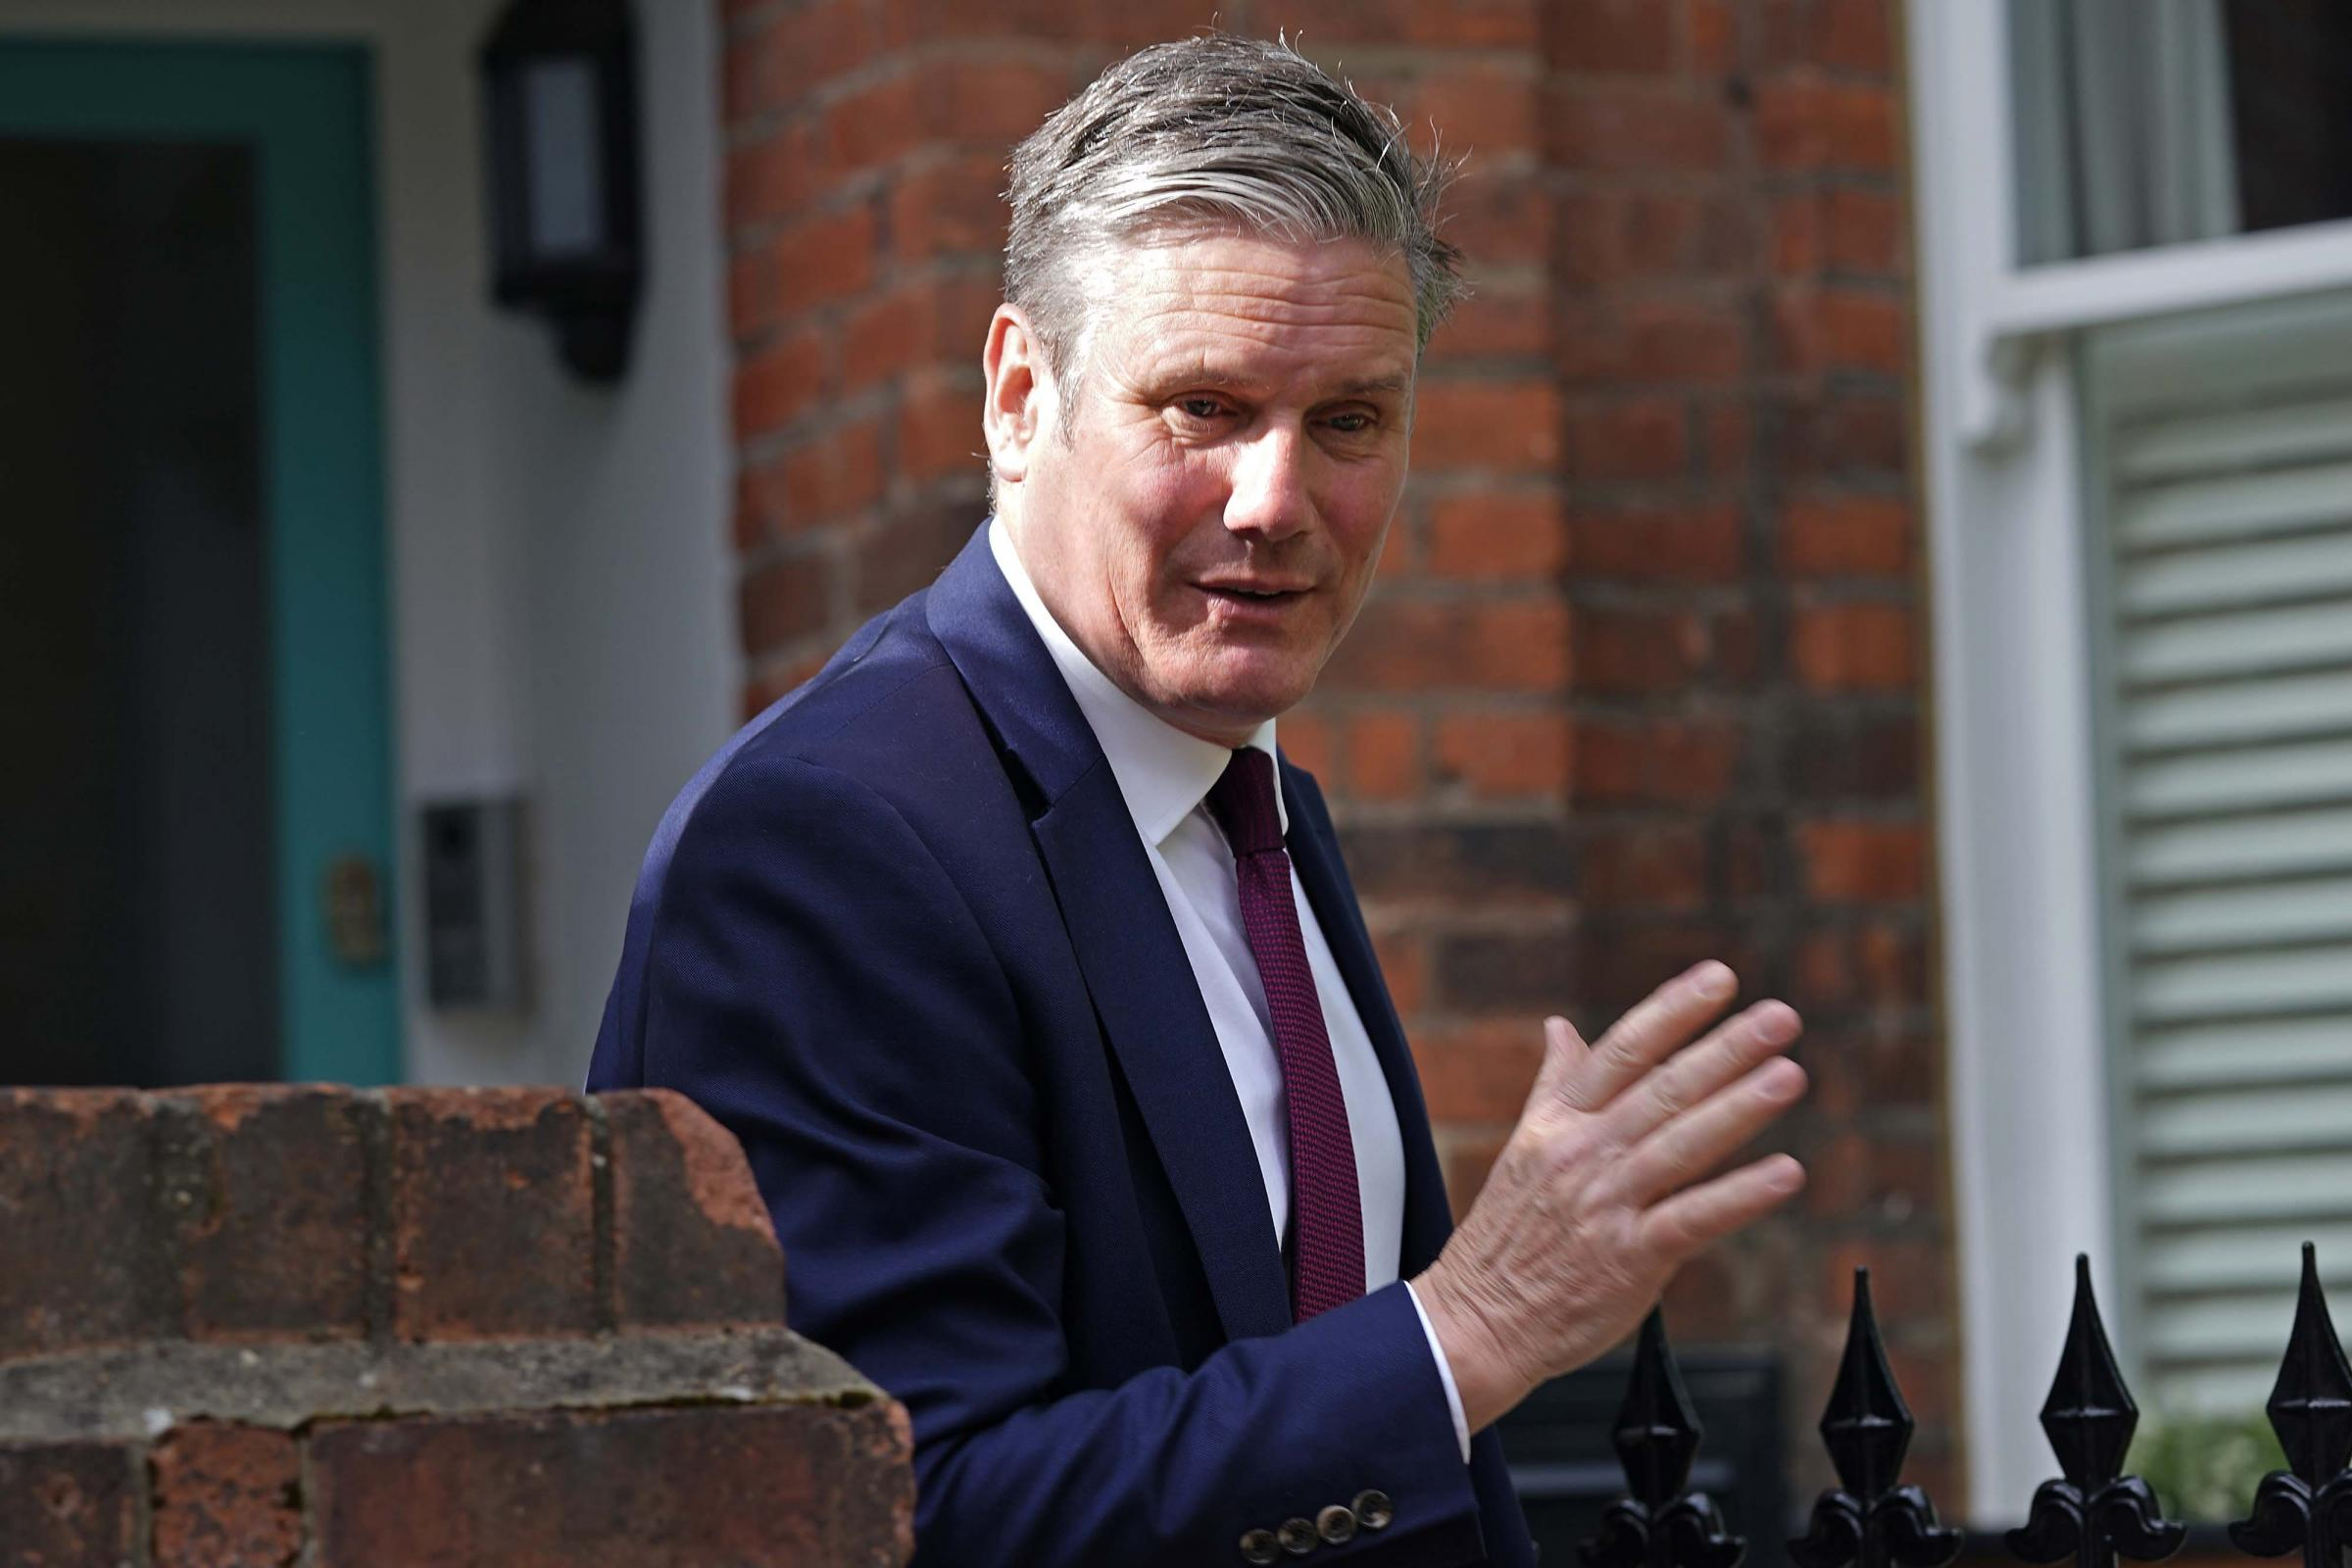 Starmer tells Labour top team: 'I take responsibility for by-election loss'